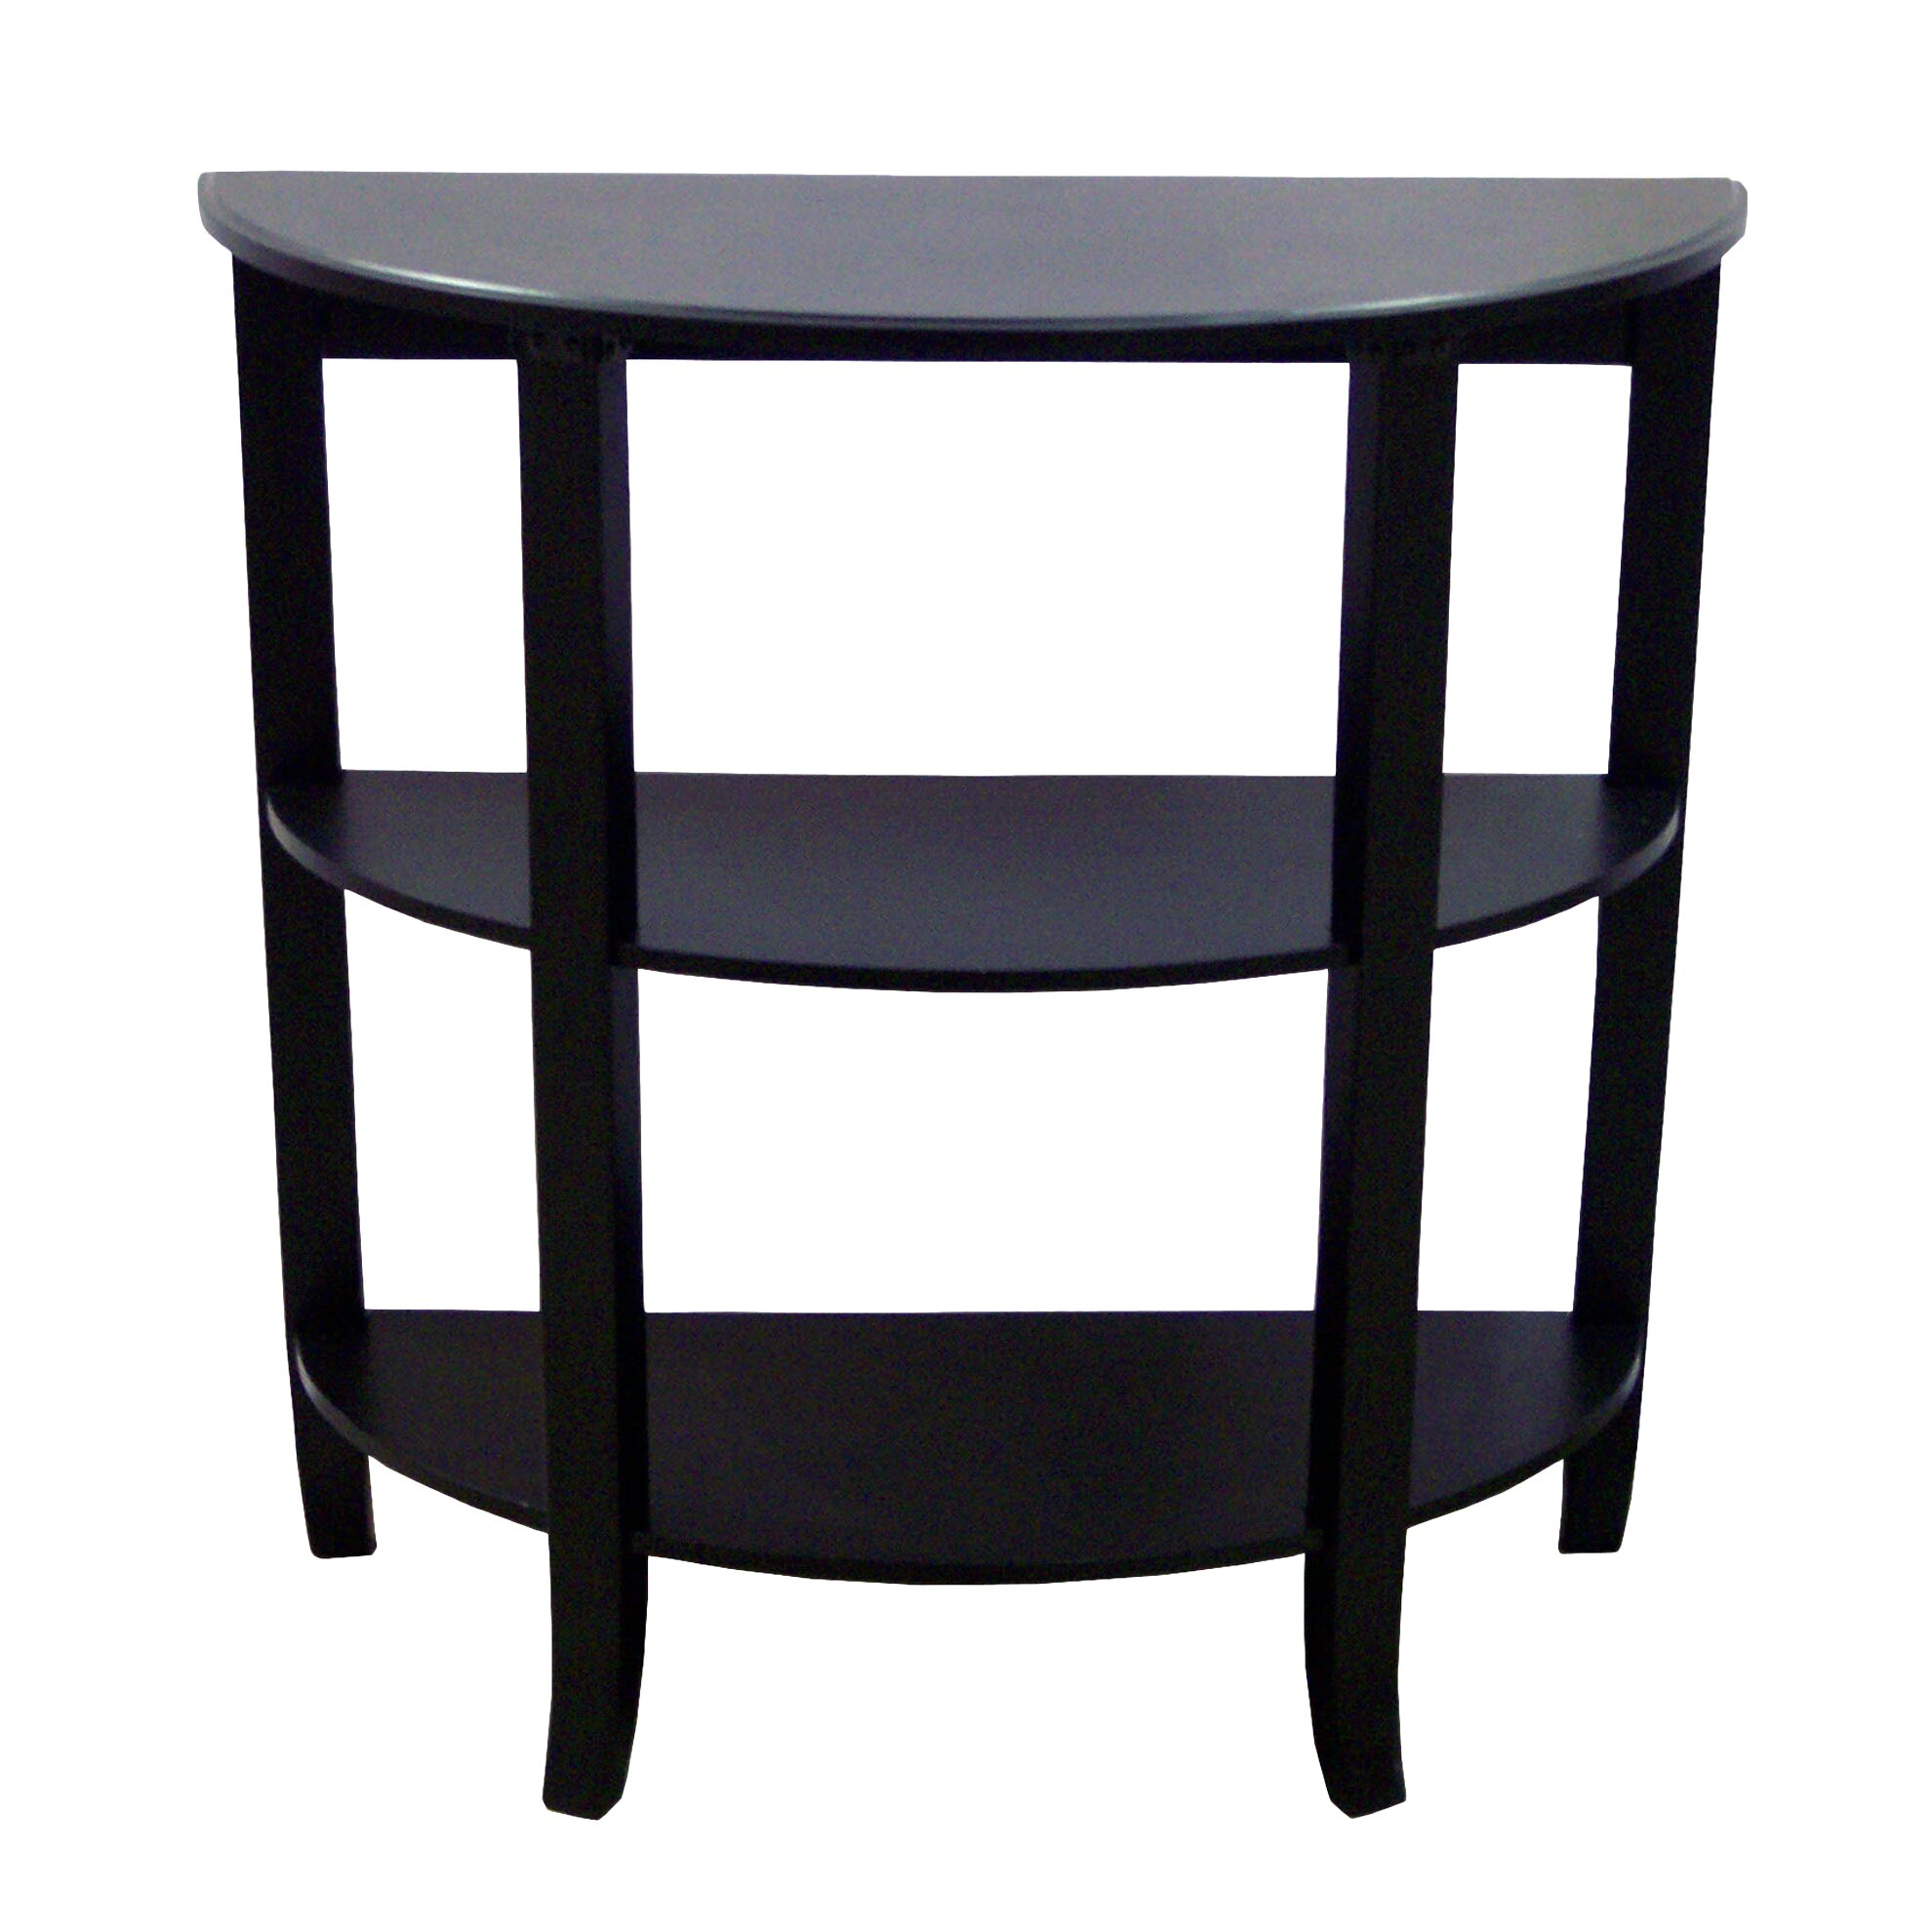 Foyer Console Questions : Tms london hall console table reviews wayfair